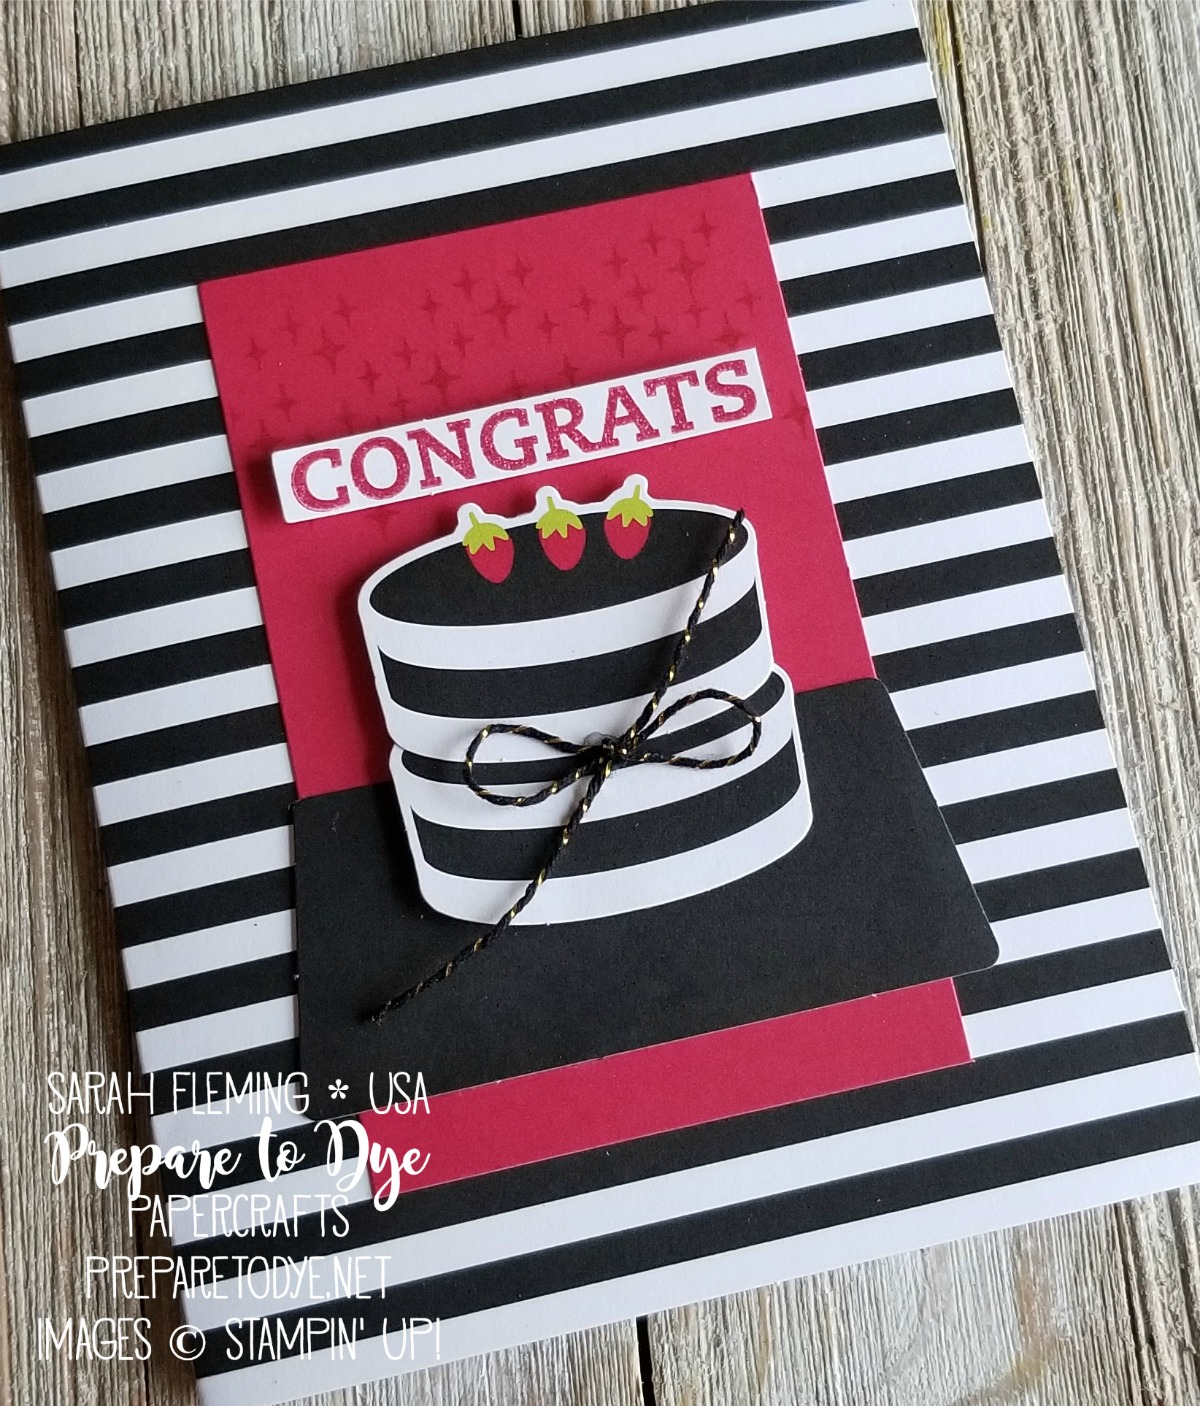 Stampin' Up! Paper Pumpkin monthly subscription box papercrafting kits - June 2018 Paper Pumpkin alternative projects - Sarah Fleming - Prepare to Dye Papercrafts